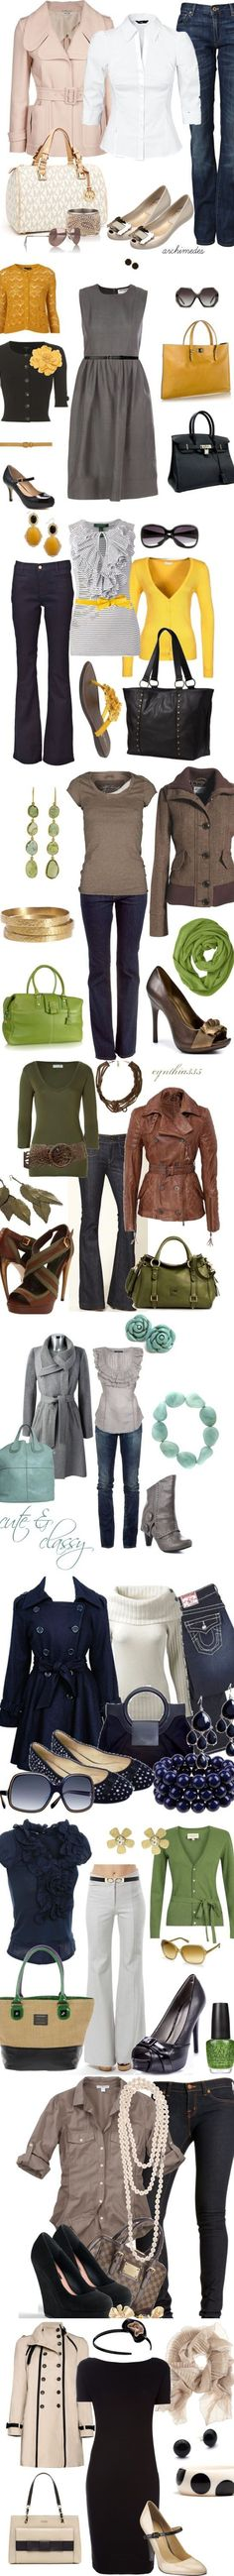 Top Classy & Chic Fall and Winter Fashion Trends of 2012